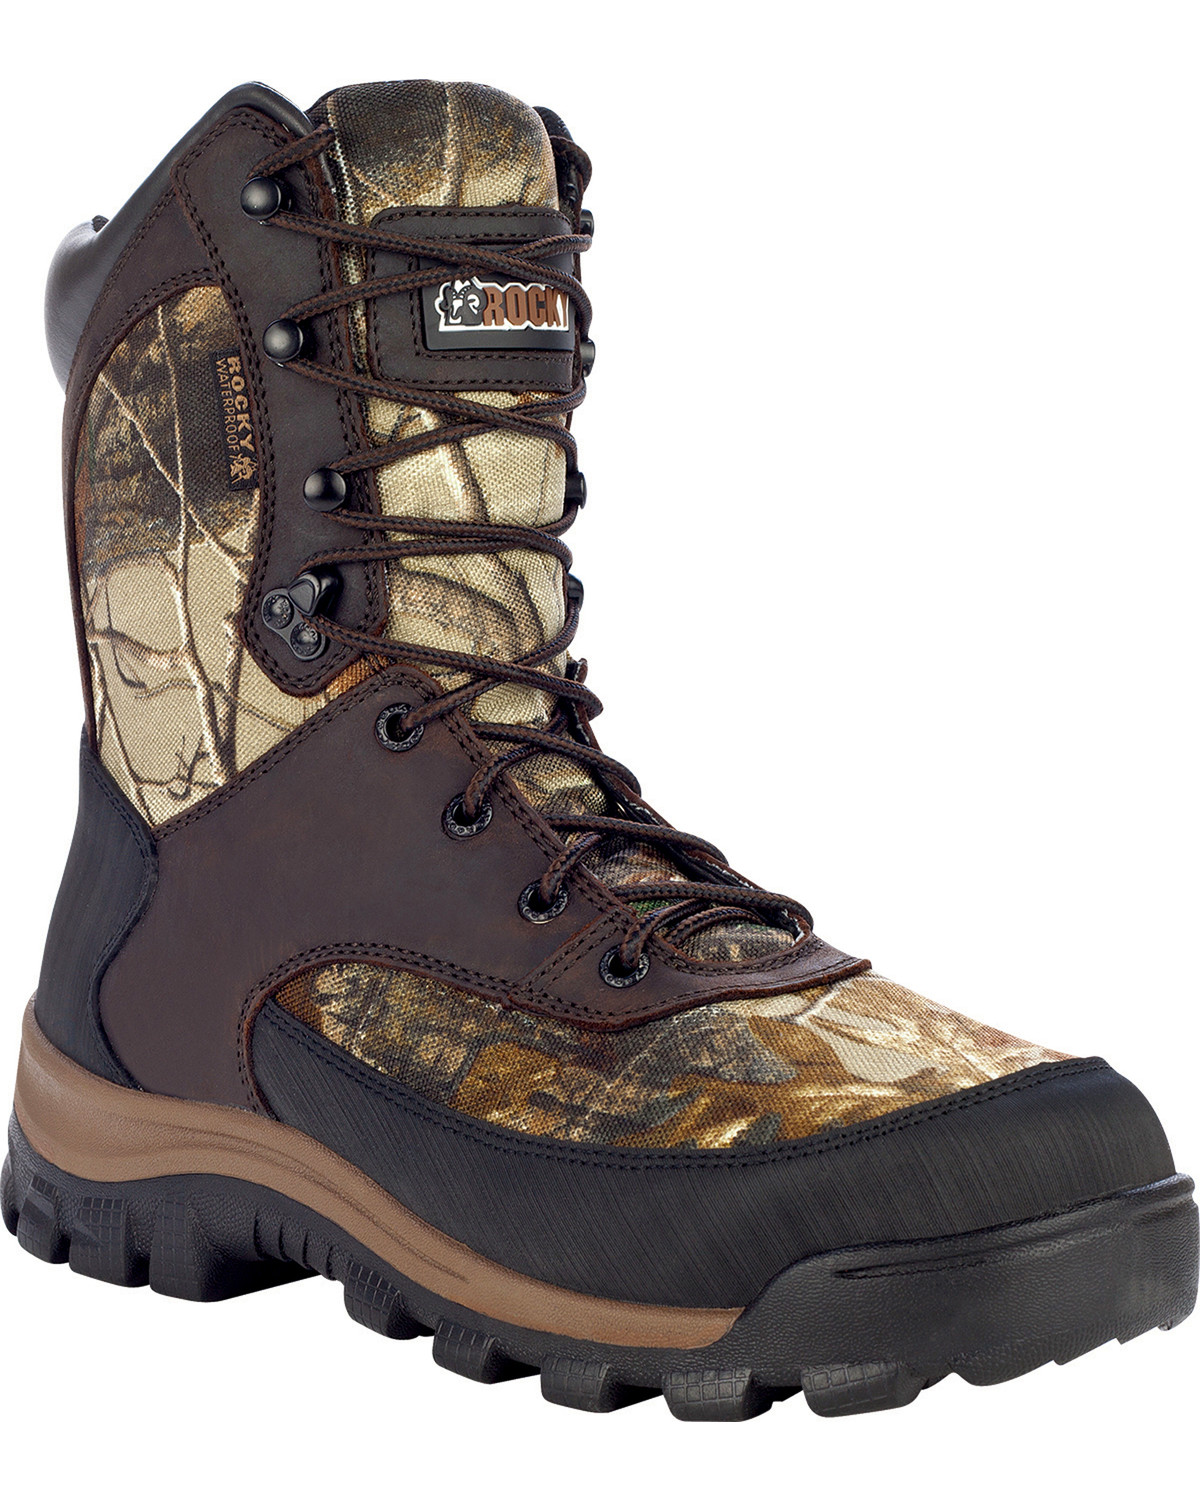 083c43d5050 Rocky Men's Camo Waterproof Hiking Boots